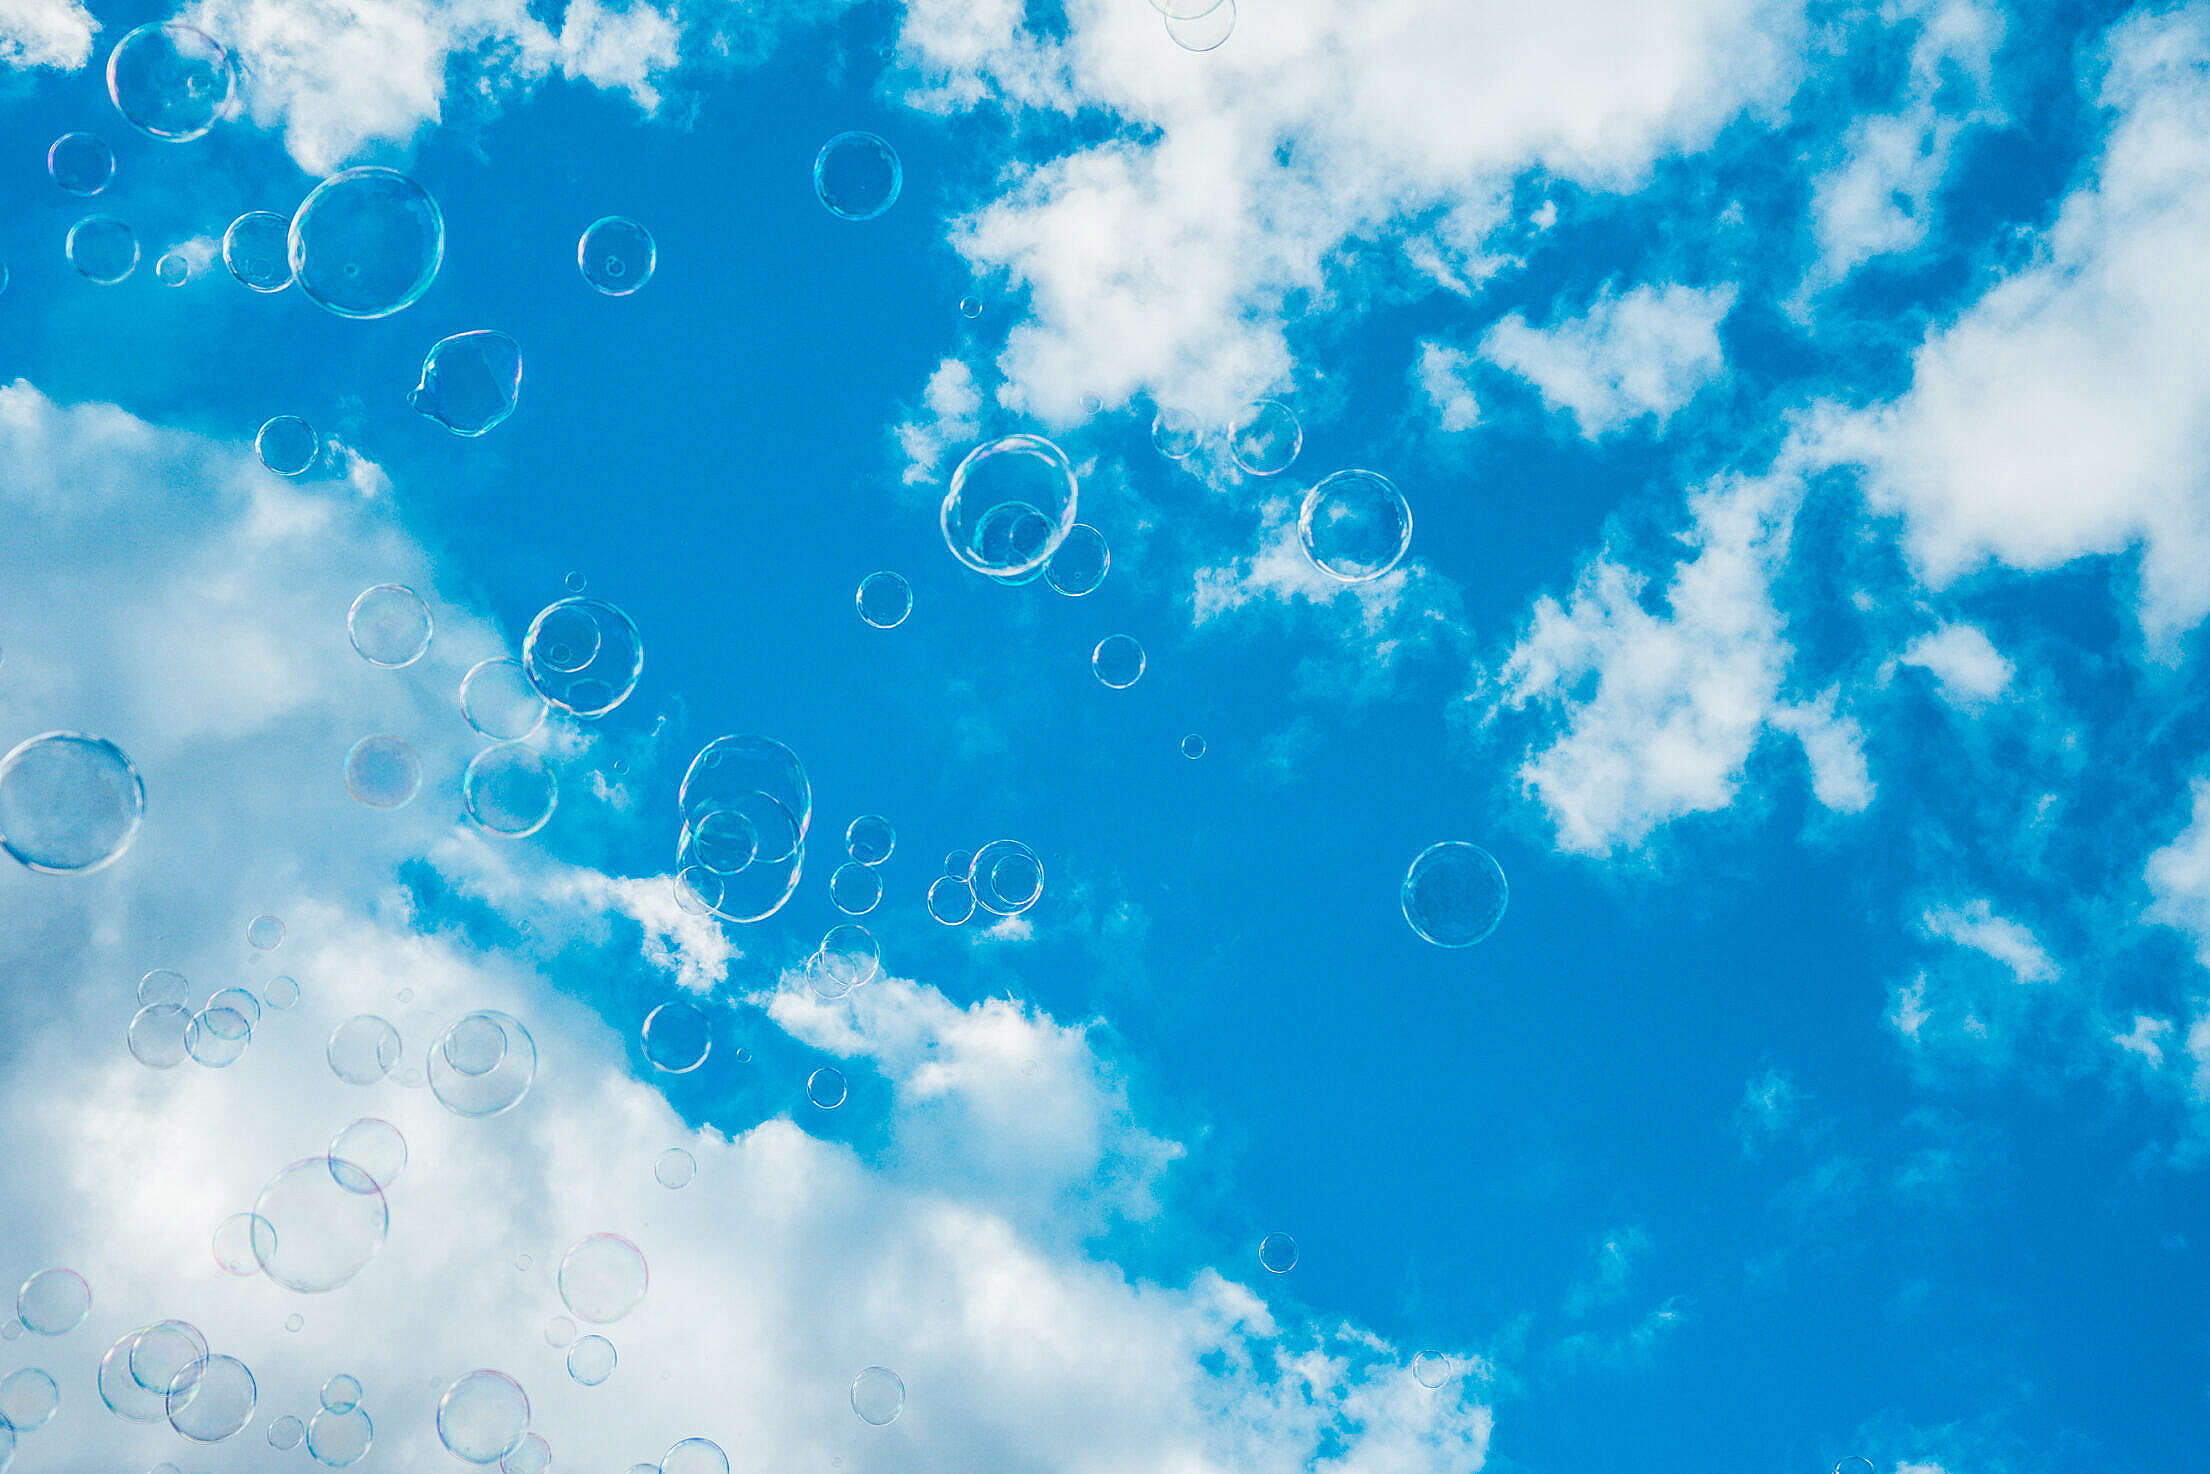 Thousands of Bubbles Against Bright Blue Sky Free Stock Photo